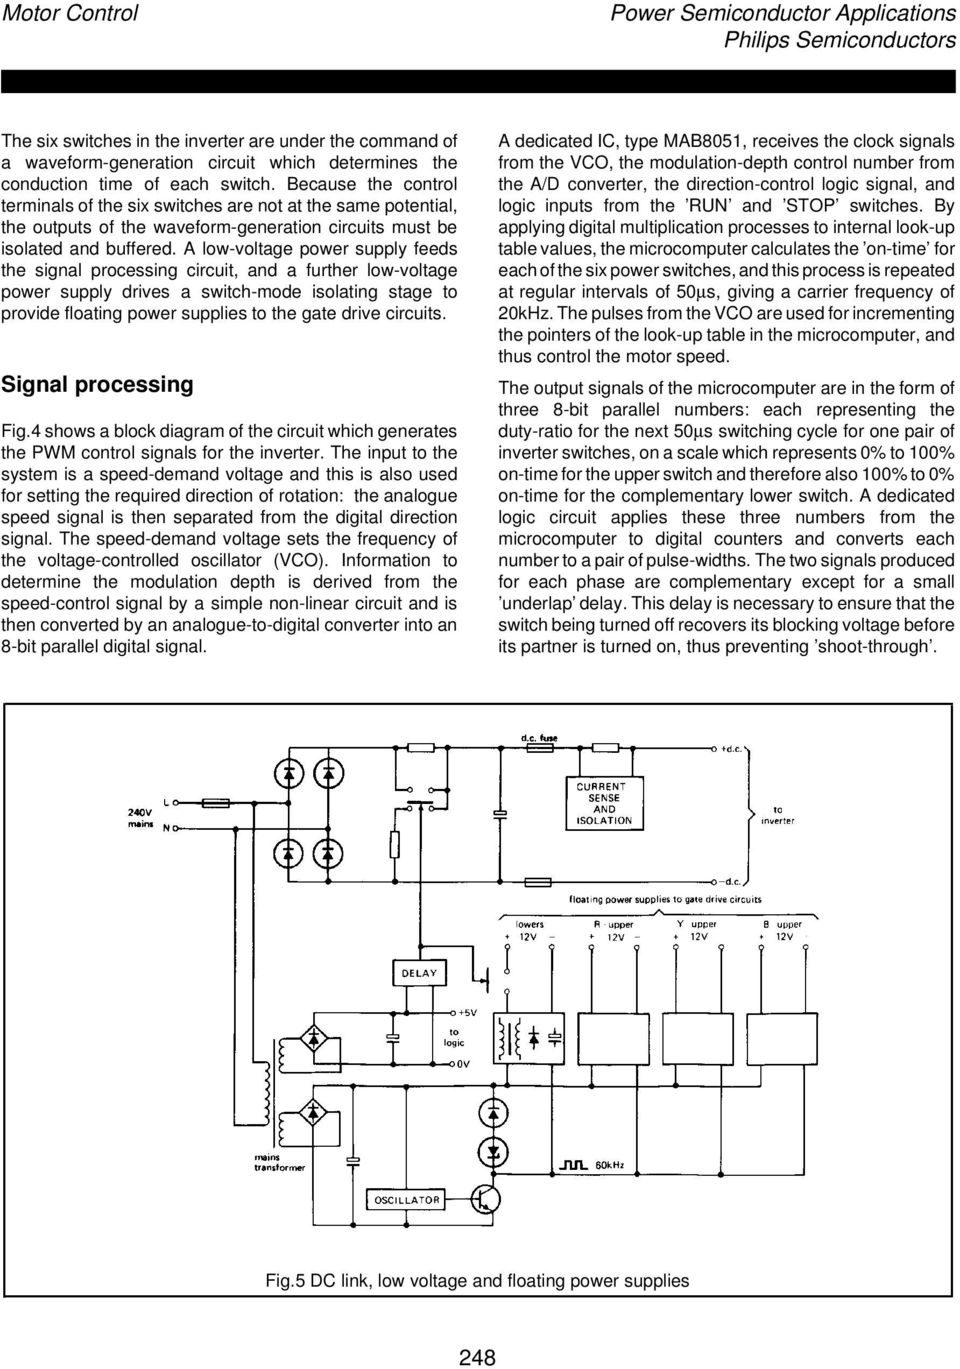 Power Semiconductor Applications Philips Semiconductors Chapter 3 Switched Mode Supply Block Diagram A Low Voltage Feeds The Signal Processing Circuit And Further